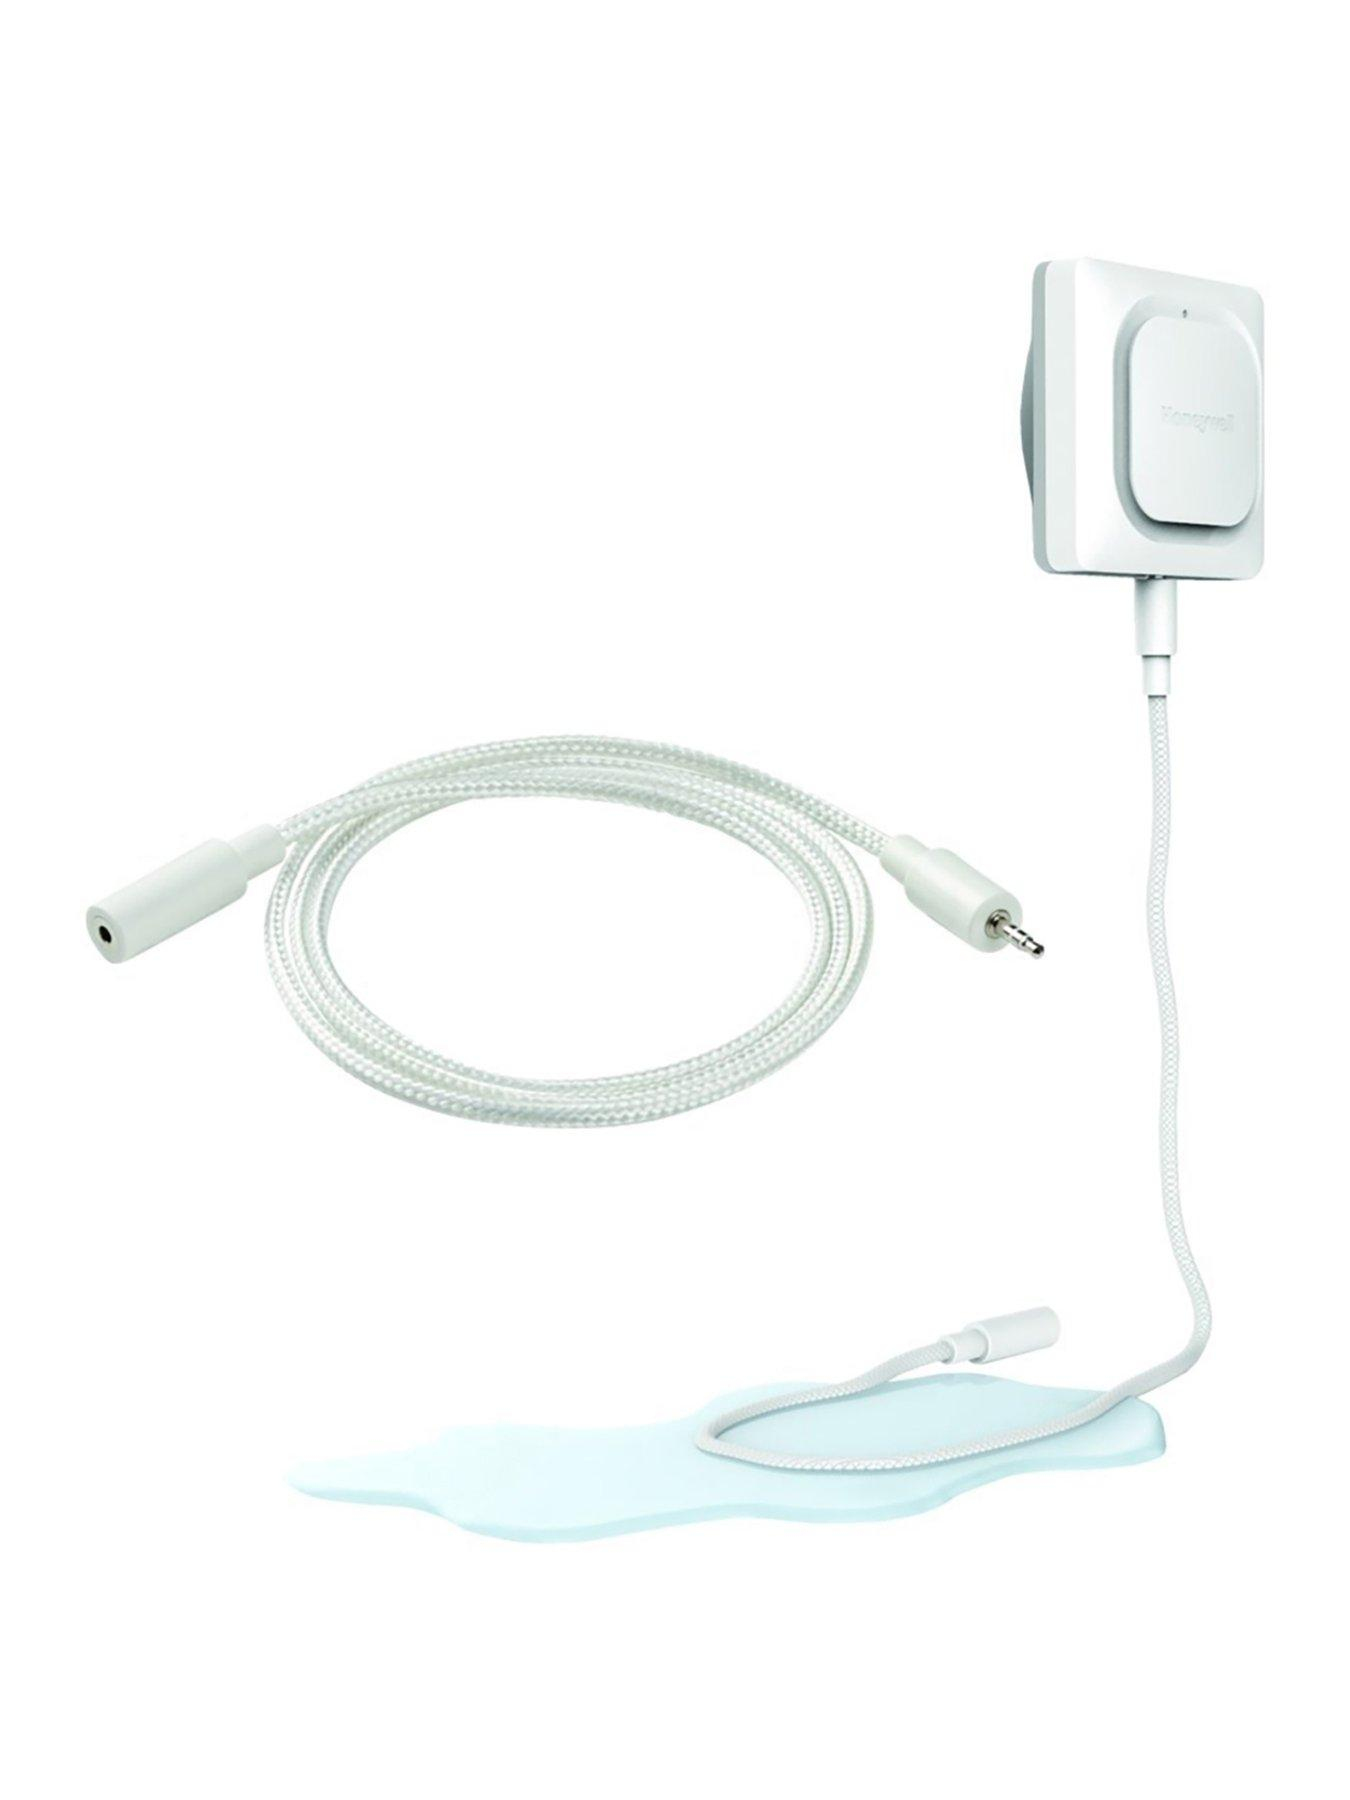 Compare prices for Honeywell Lyric W1 Wi-Fi Water Leak And Freeze Detector Accessory Sensing Cable